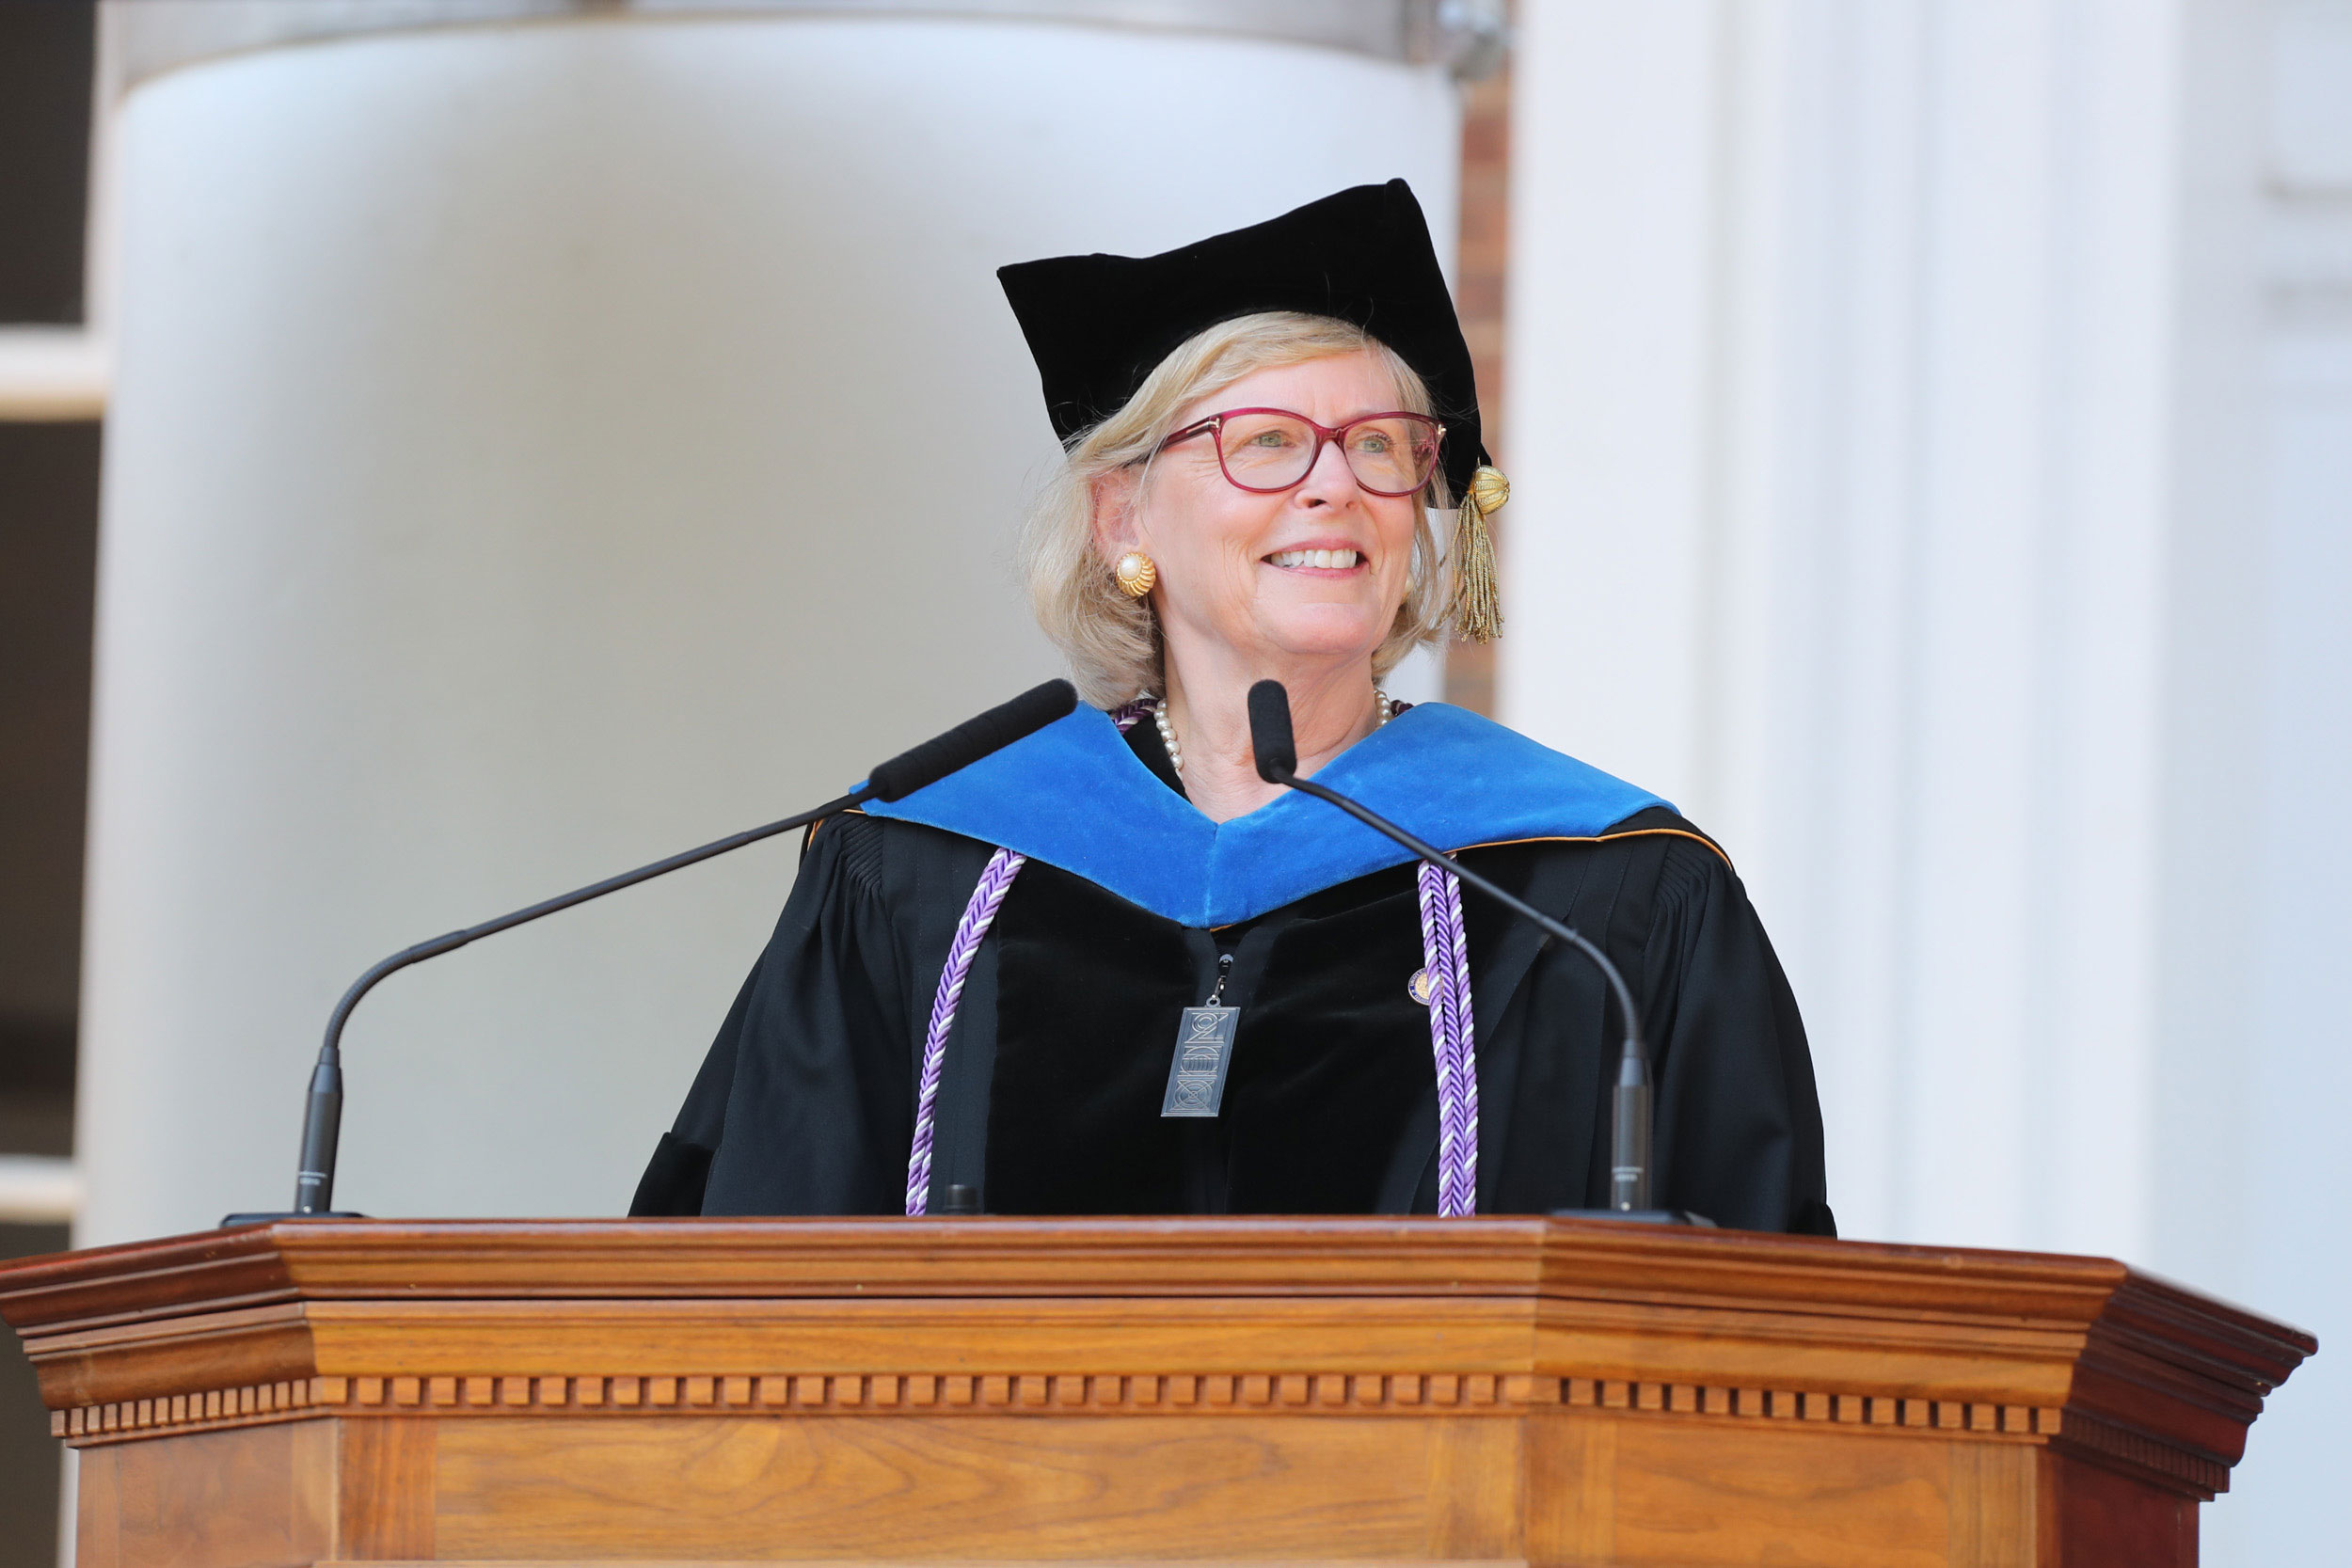 Fontaine addressed members of the Class of 2019 at Final Exercises on May 19.